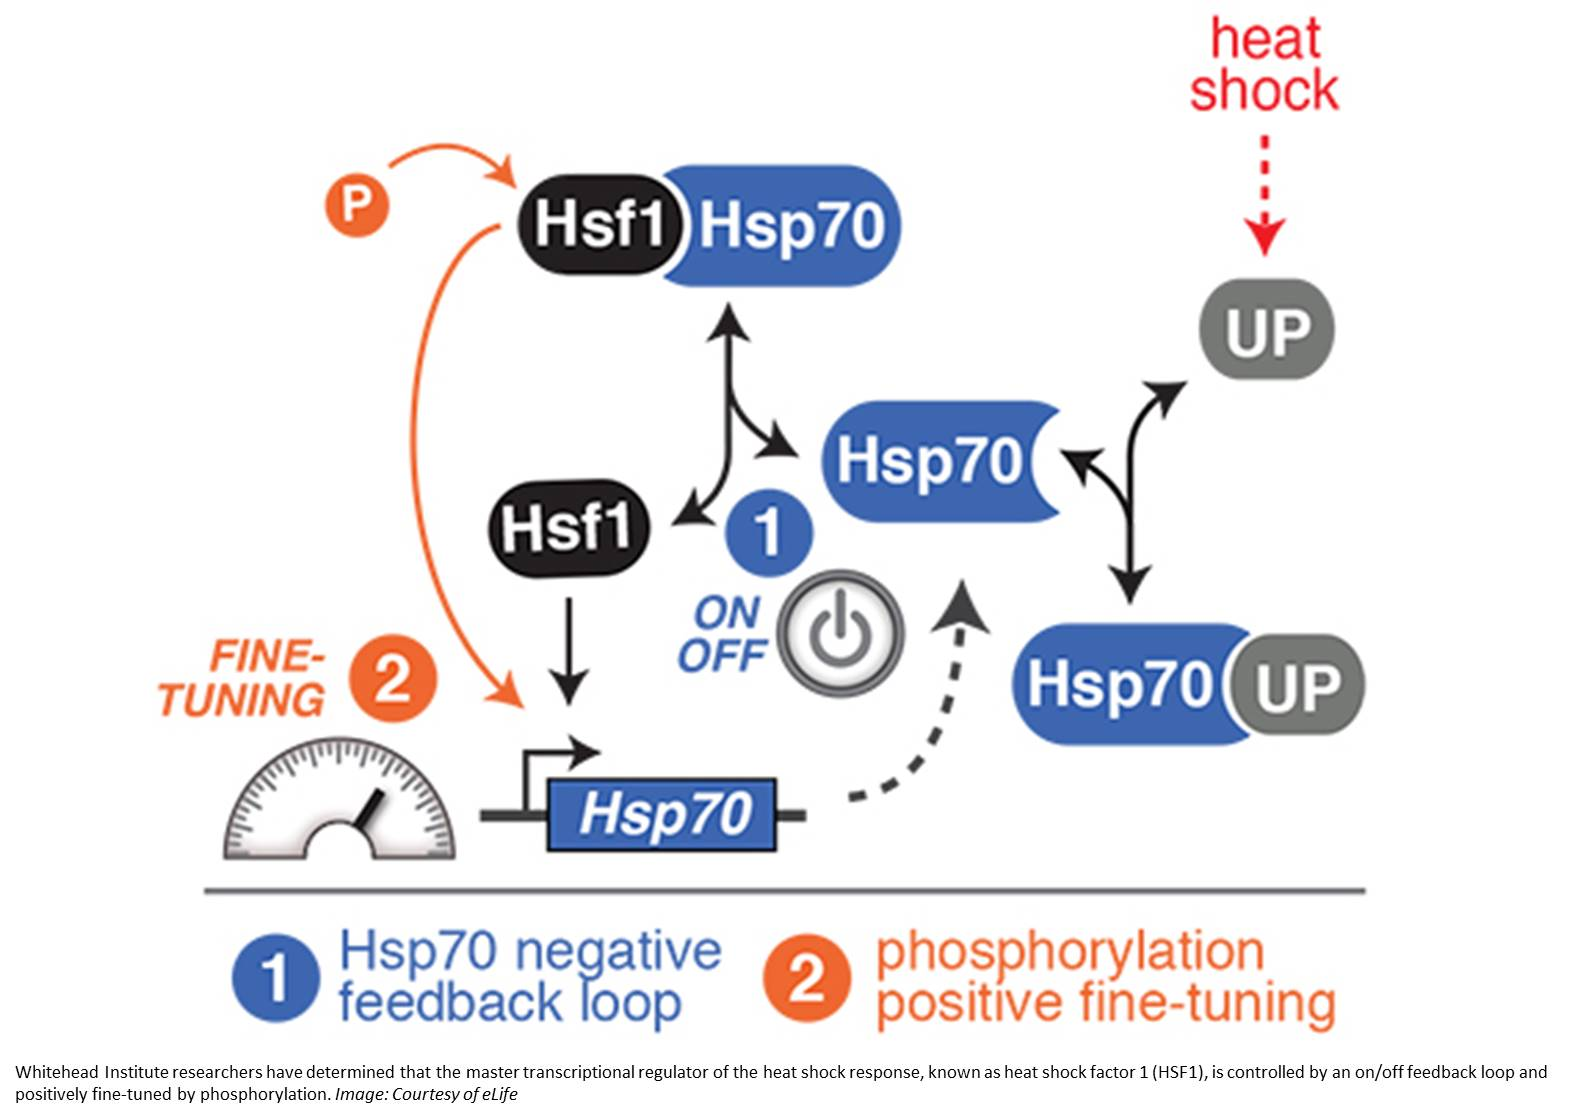 Heat shock regulator controlled by on/off switch and phosphorylation